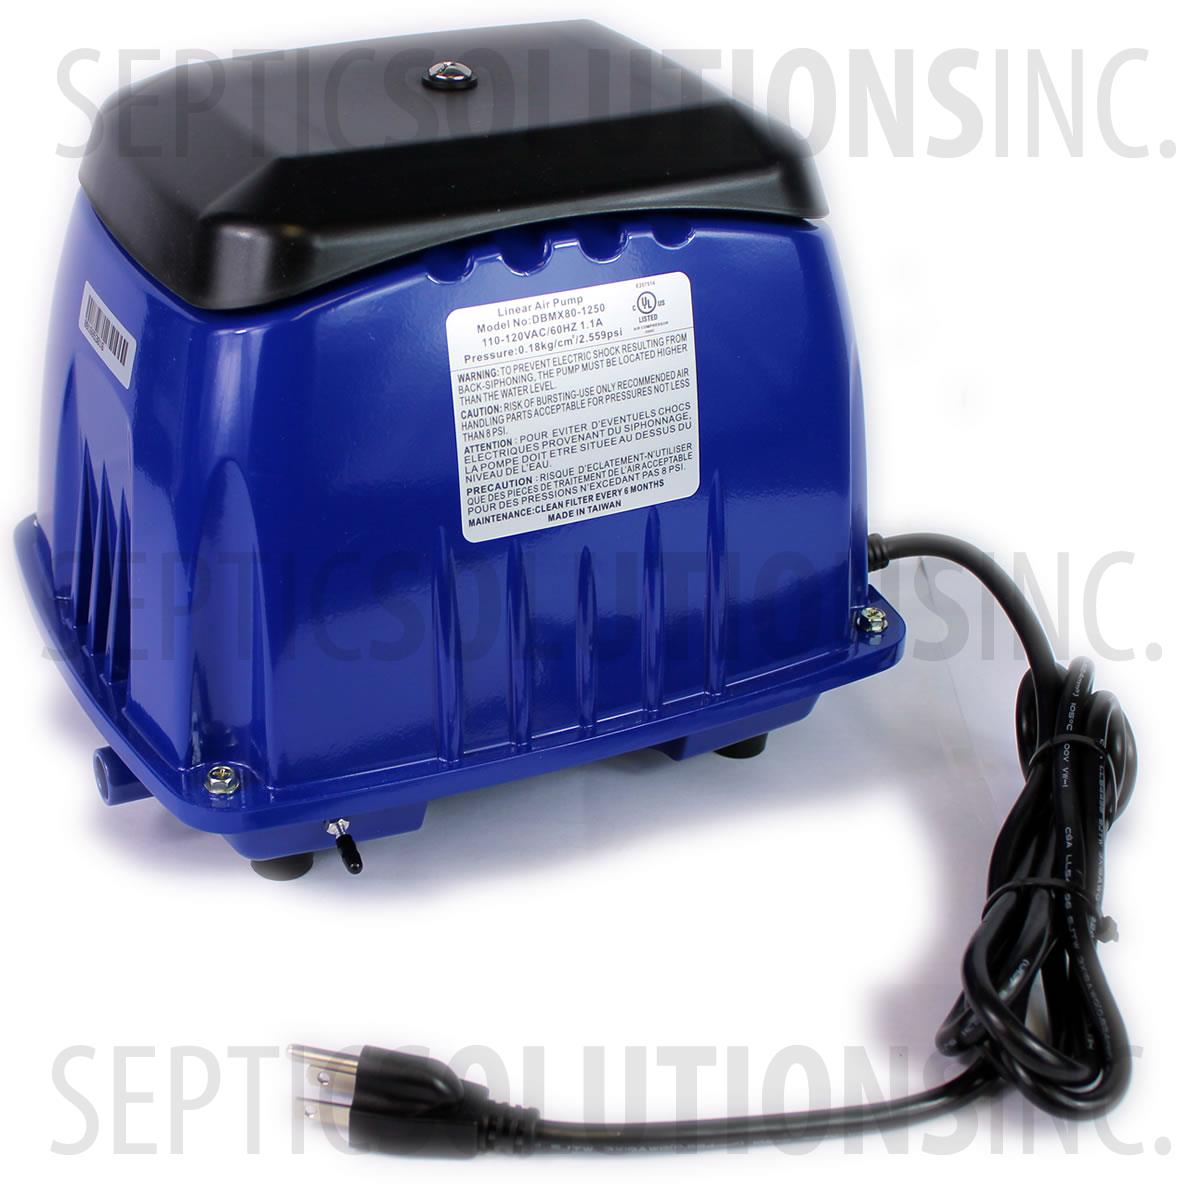 Cyclone Ssx 80 Septic Air Pump Ssx80 Free Shipping